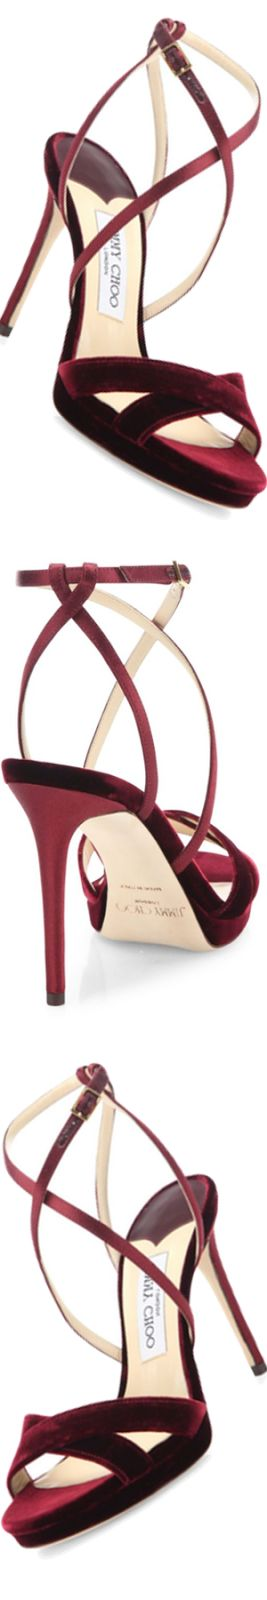 Jimmy Choo Lola 100 Velvet & Satin Crisscross Sandals